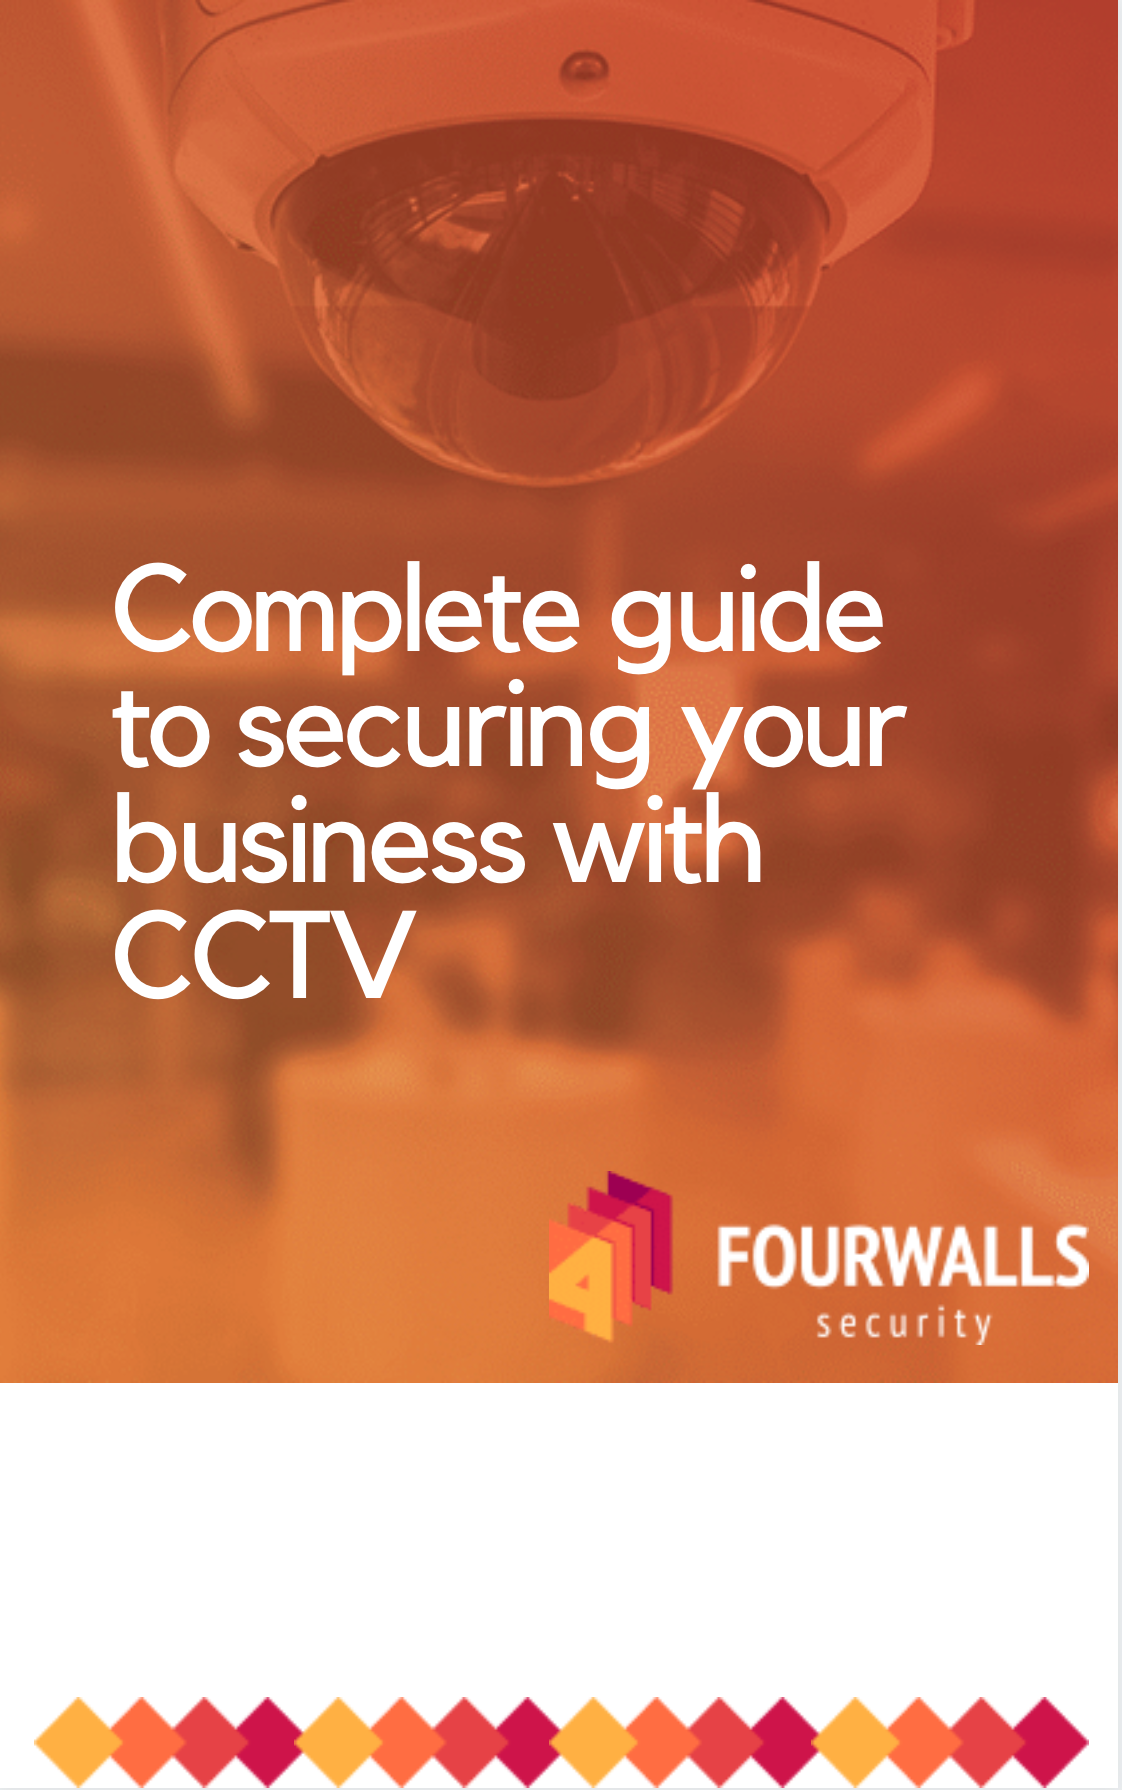 Complete guide to securing your business with CCTV